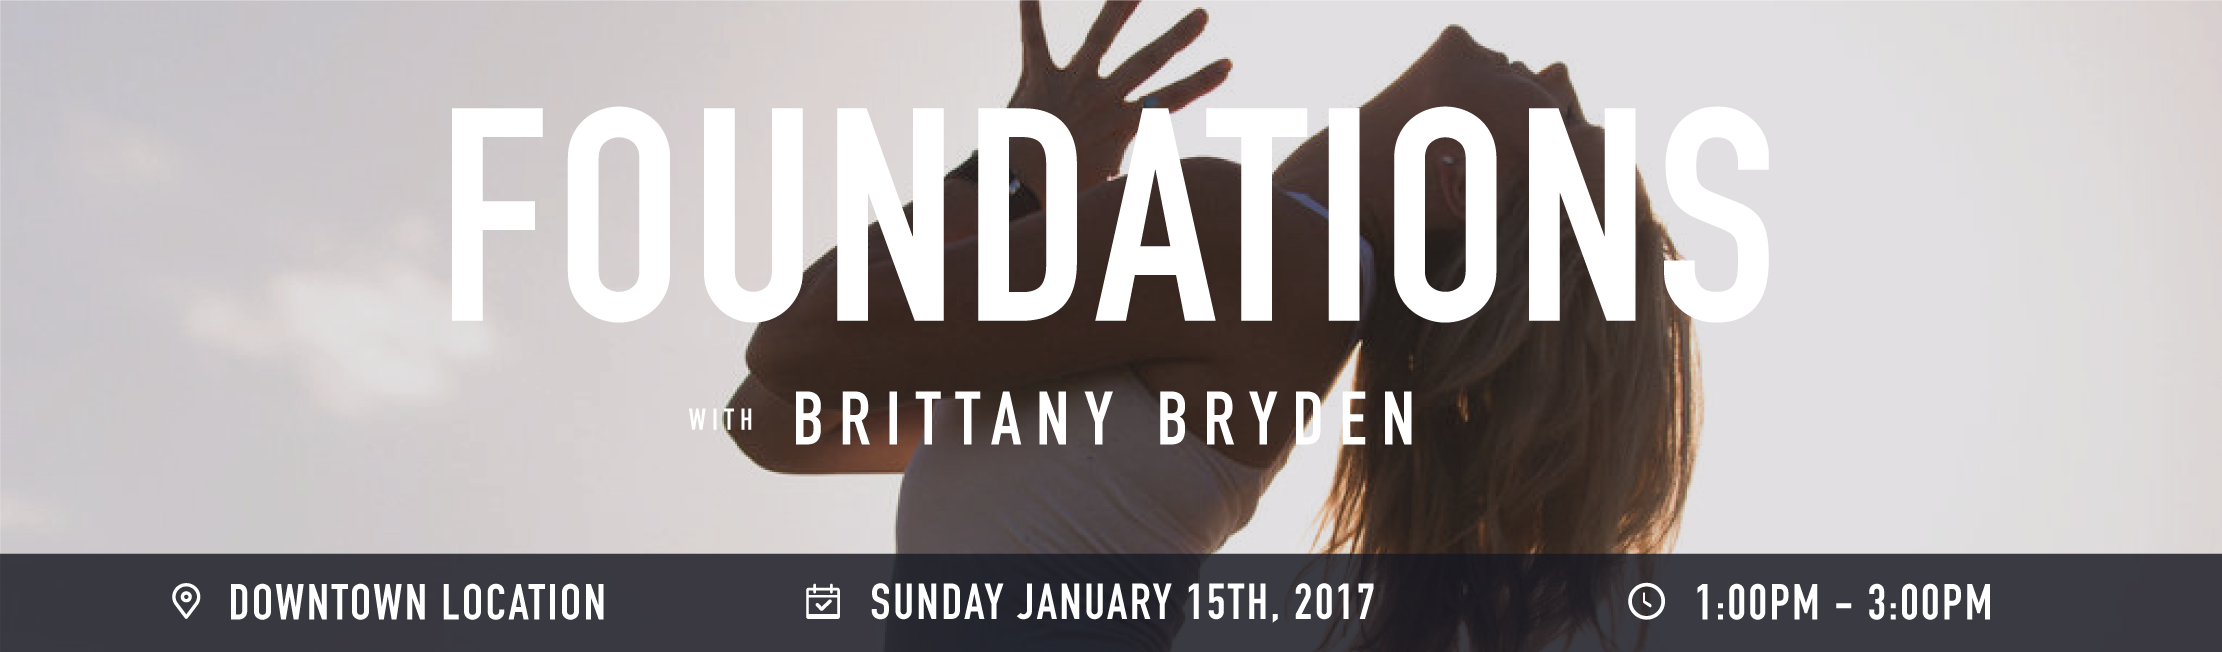 Foundations jan15 header